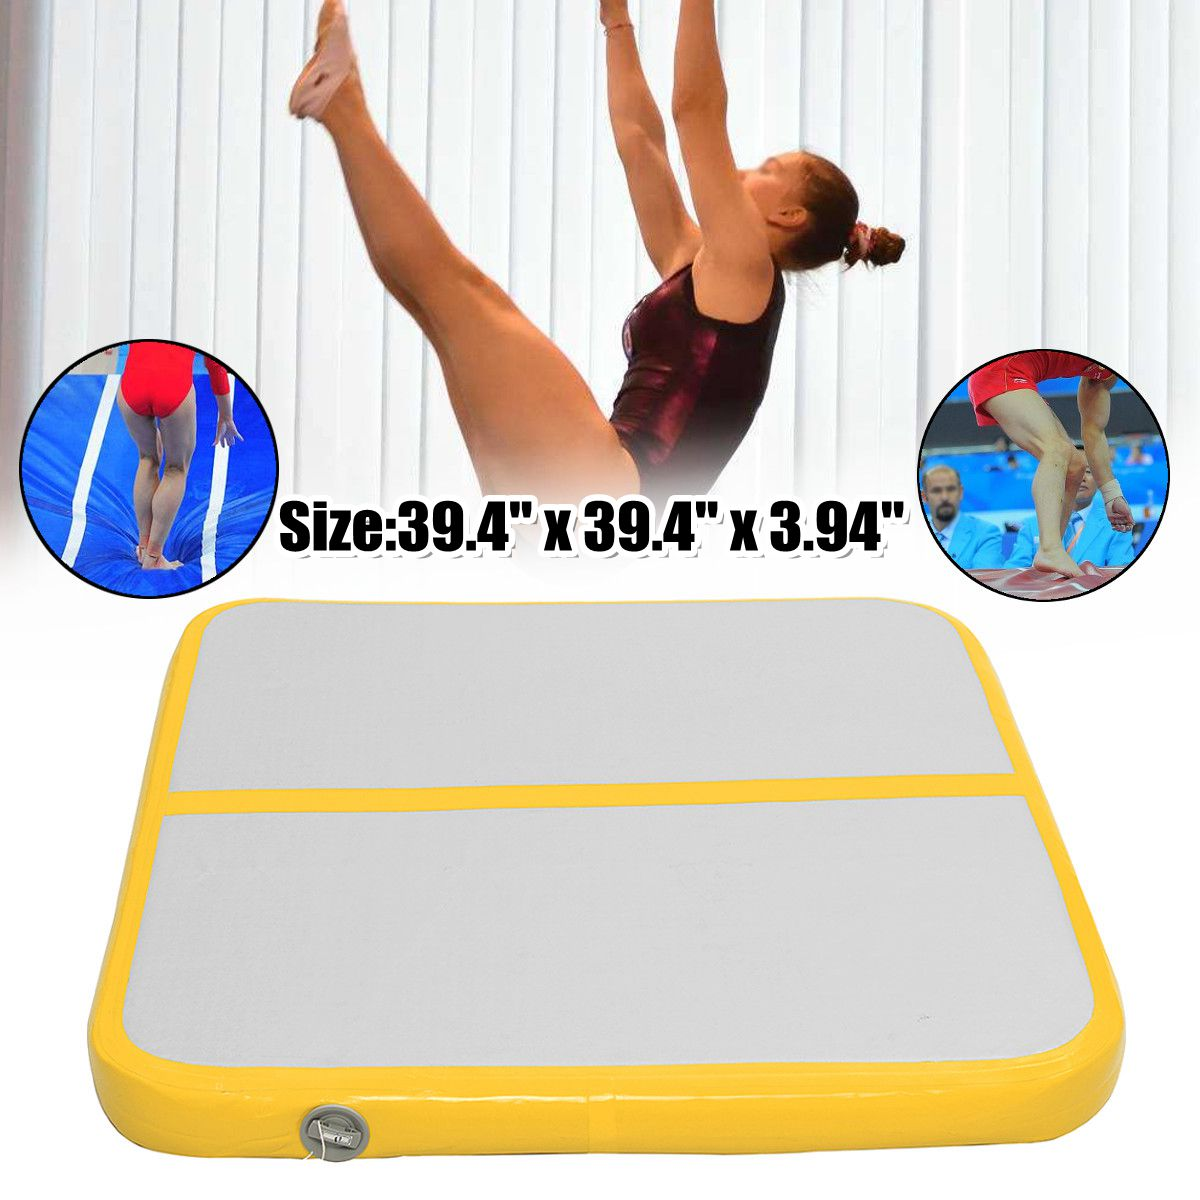 100*100*10m Air Track Floor Home Inflatable Gymnastics Tumbling Mat GYM for Kids 100